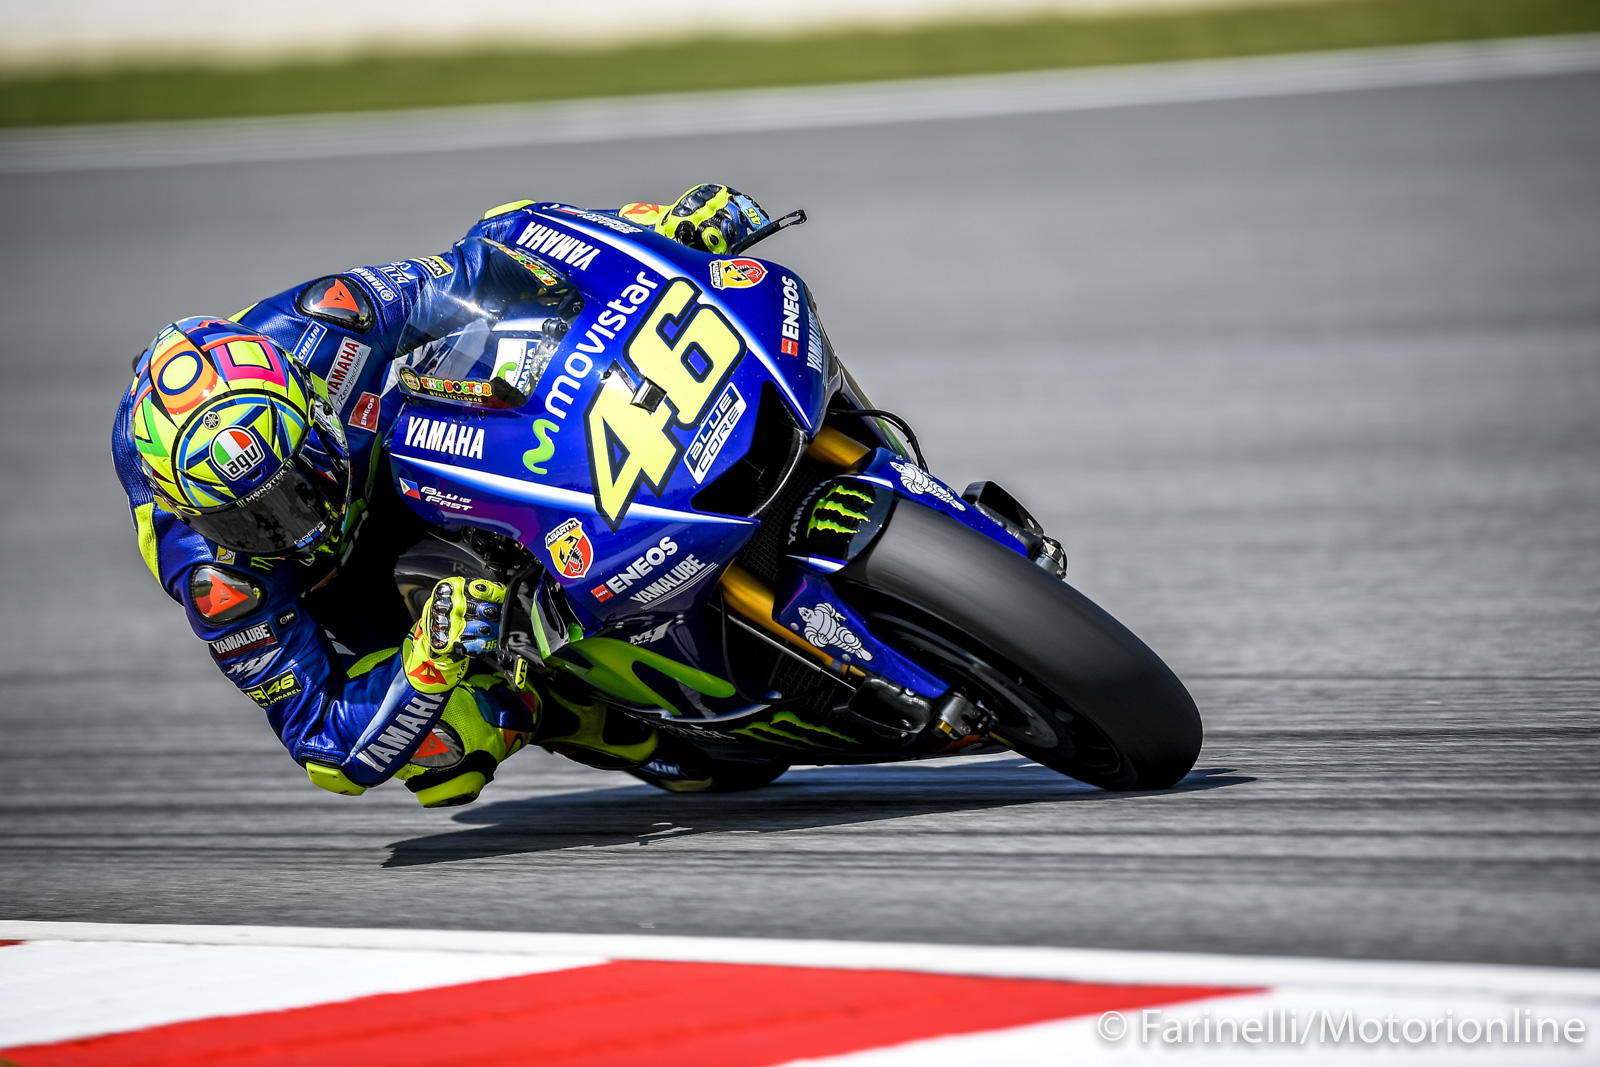 Motogp Live Streaming Sepang Test | MotoGP 2017 Info, Video, Points Table